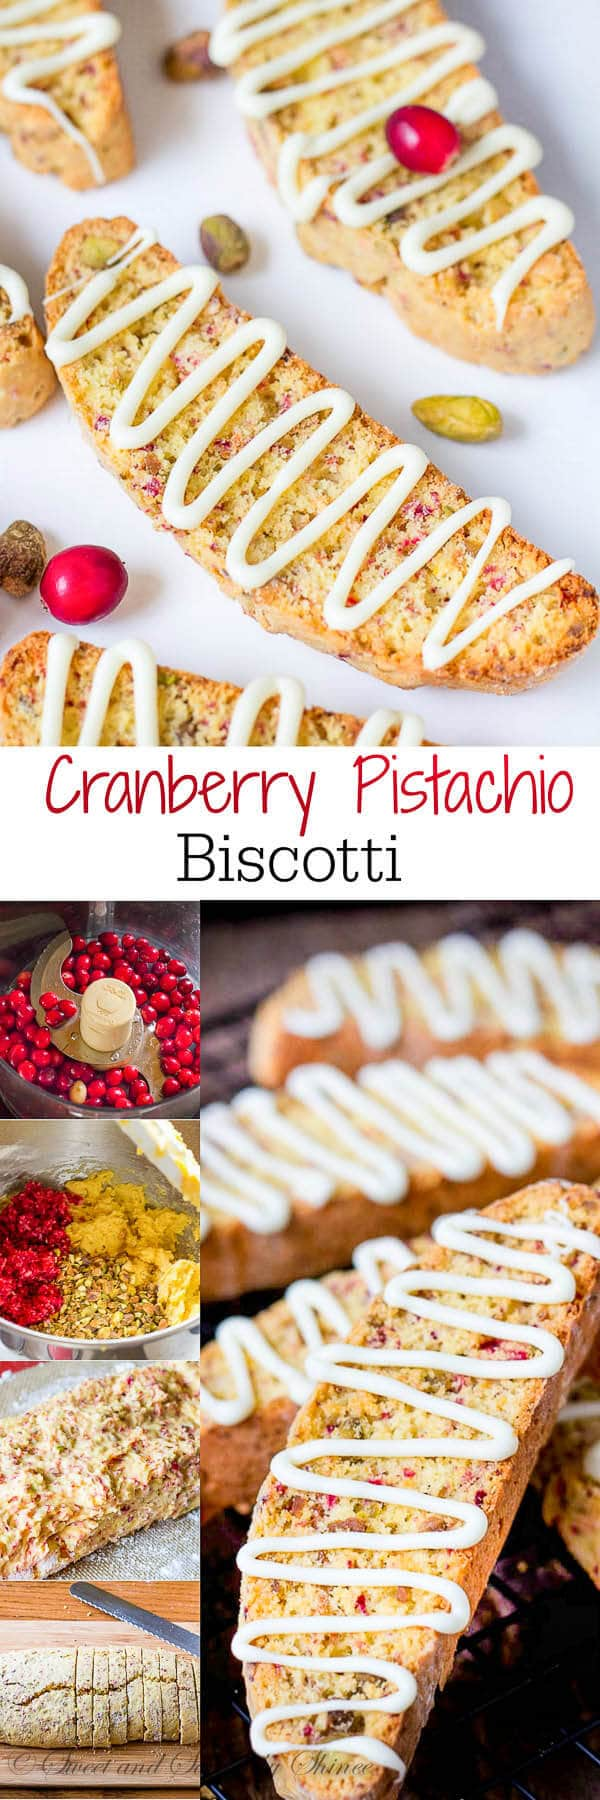 These cranberry pistachio biscotti are crunchy, but not rock-hard and oh-so-delicious dunked in your morning java! Perfect for Christmas cookie care packages too.